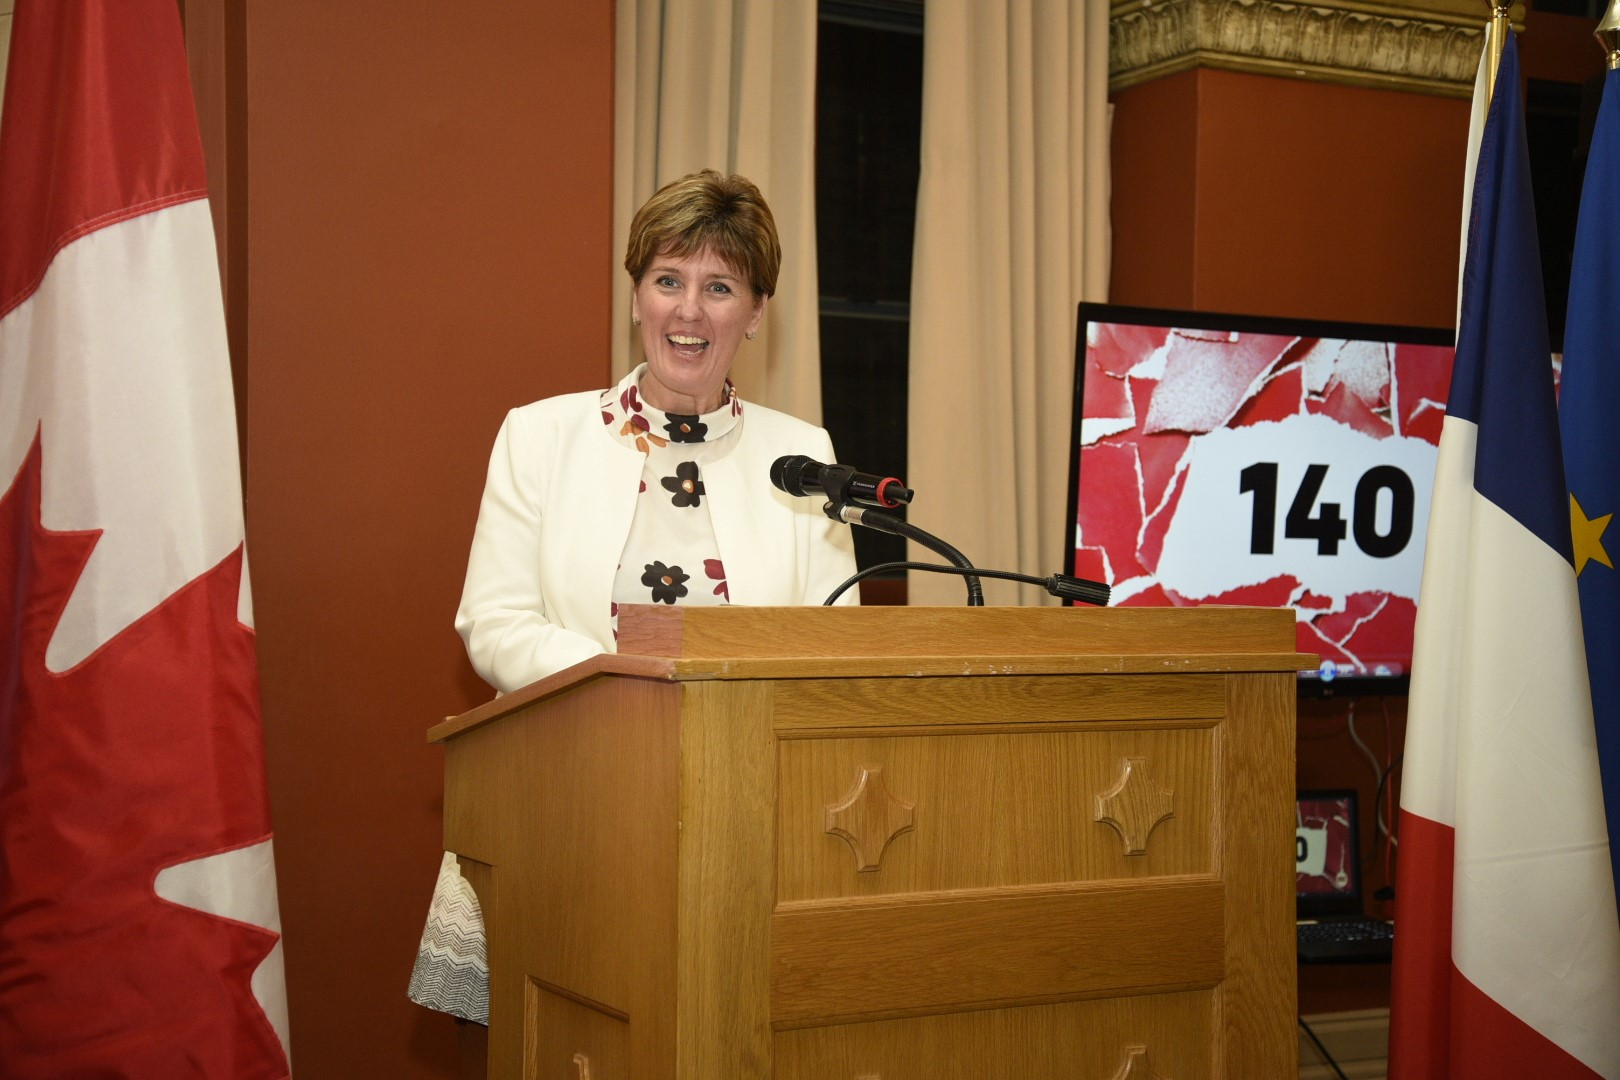 The Hon. Marie-Claude Bibeau speaks about the importance of work done by groups like RESULTS Canada, the Interagency Coalition on AIDS and Development, the Global Fund Advocates Network and the ONE Campaign to the results achieved at the Fifth Replenishment Conference of the Global Fund to fight AIDS, Tuberculosis and Malaria.